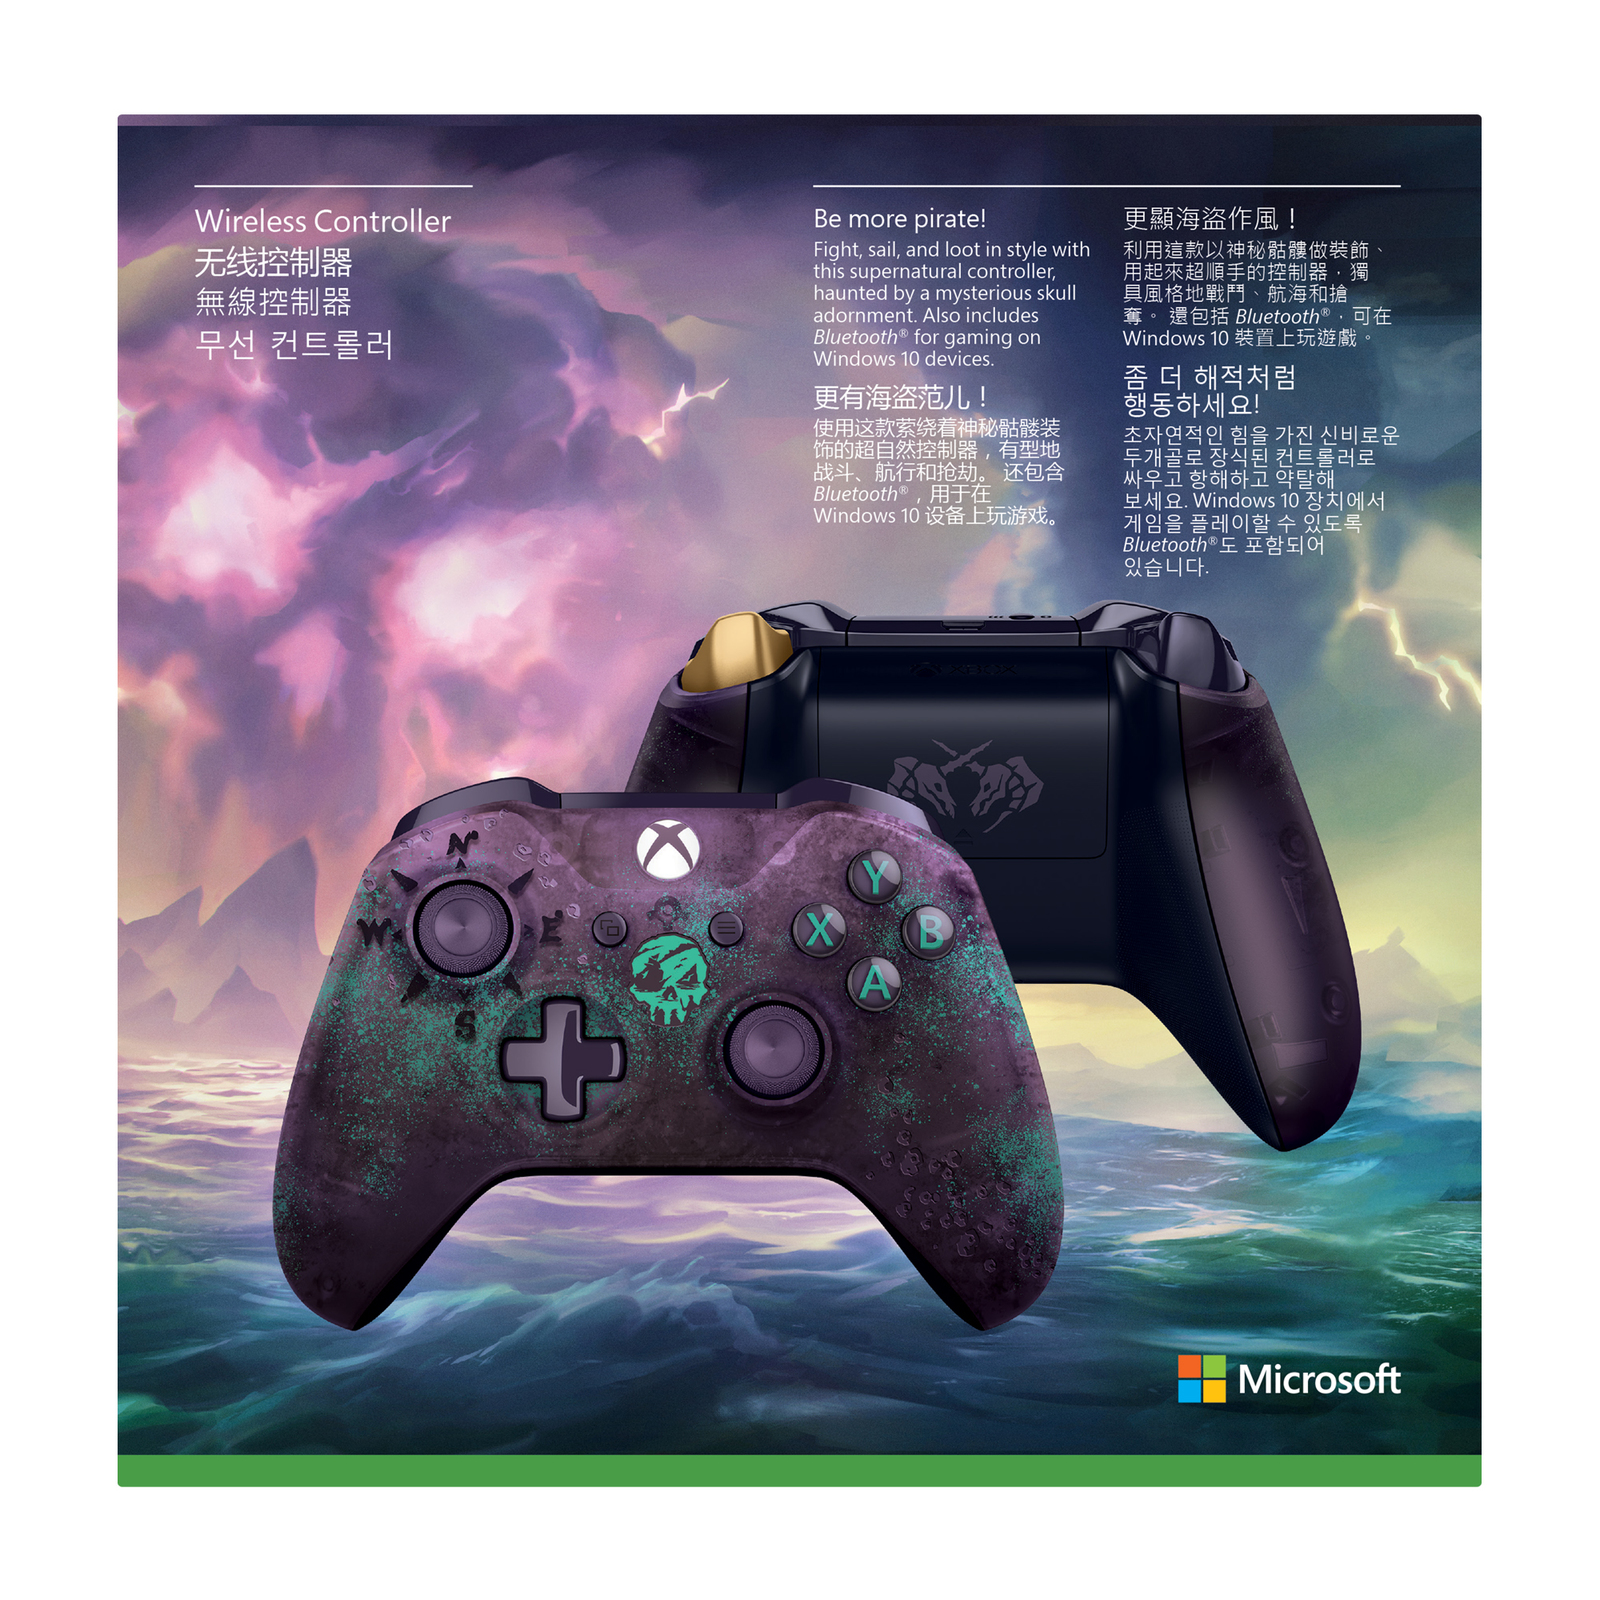 Xbox One Wireless Controller - Sea of Thieves Limited Edition (with Bluetooth) for Xbox One image